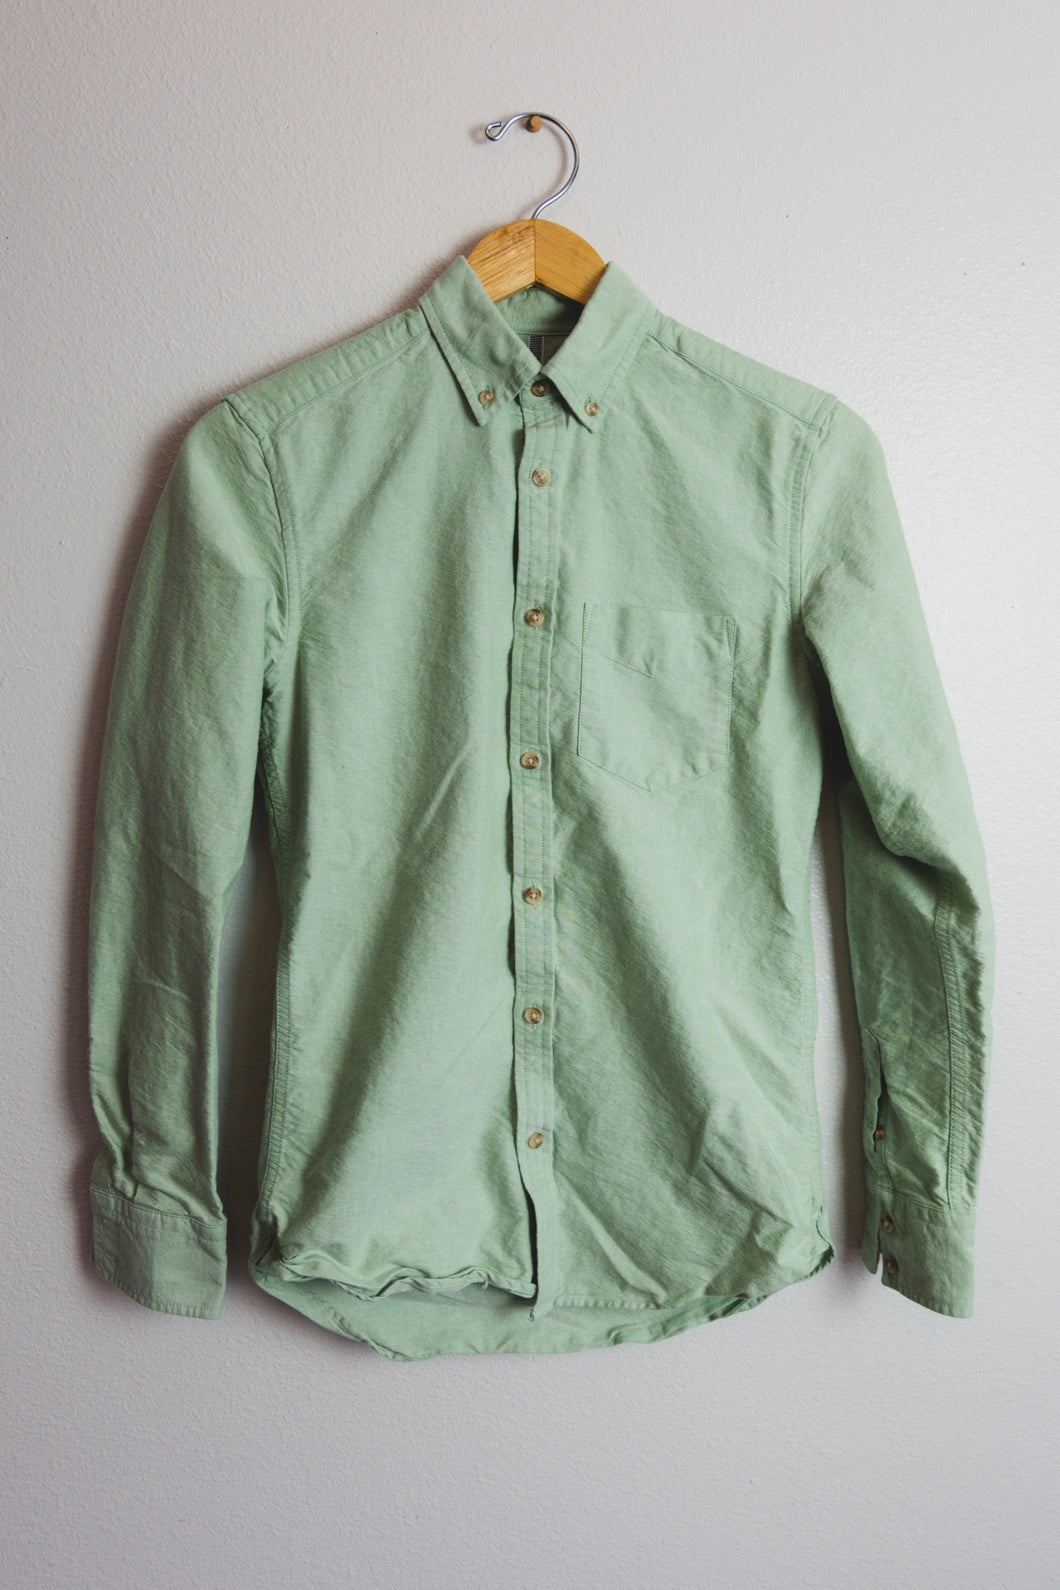 Teal Bee Button Up